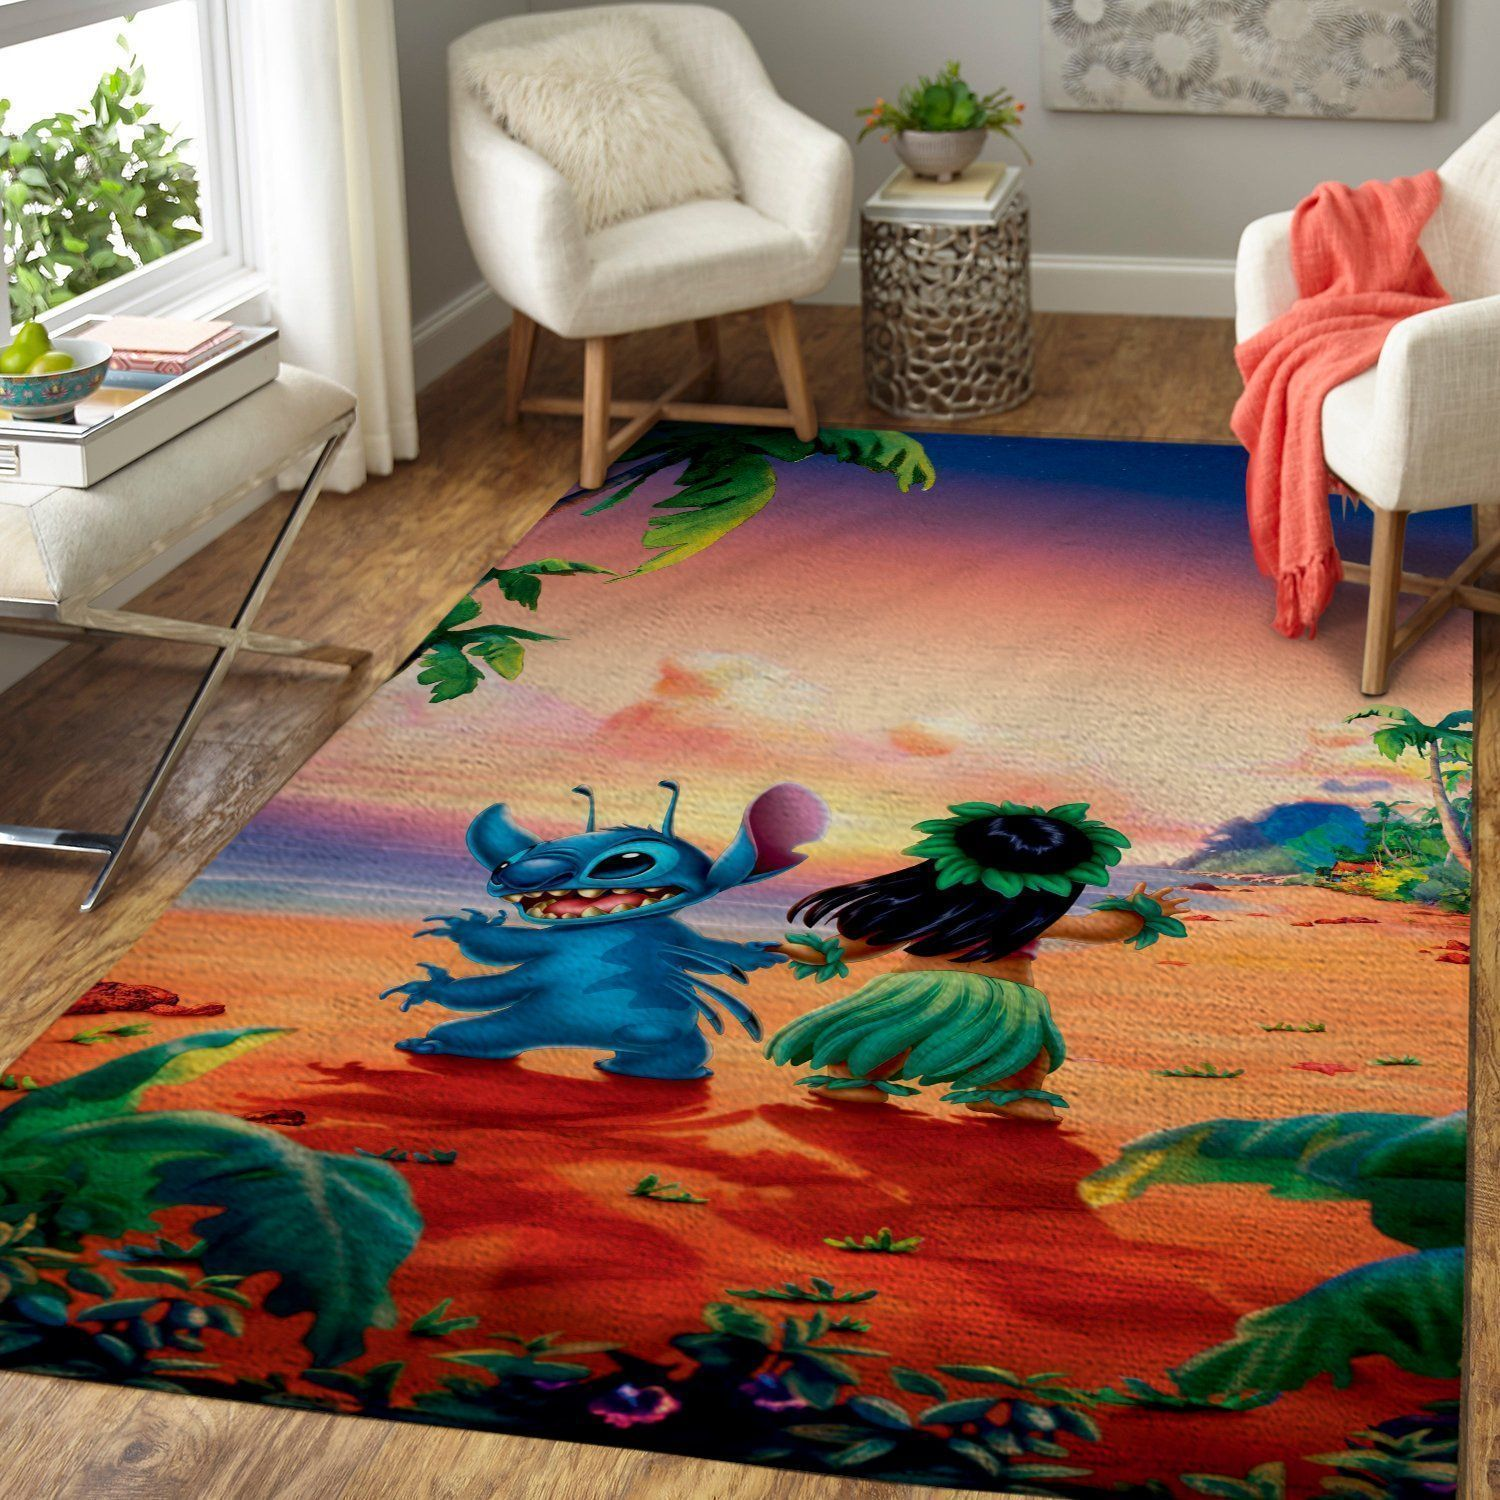 Lilo & Stitch Area Rugs / Disney Movie Living Room Carpet, Custom Floor Decor 04113